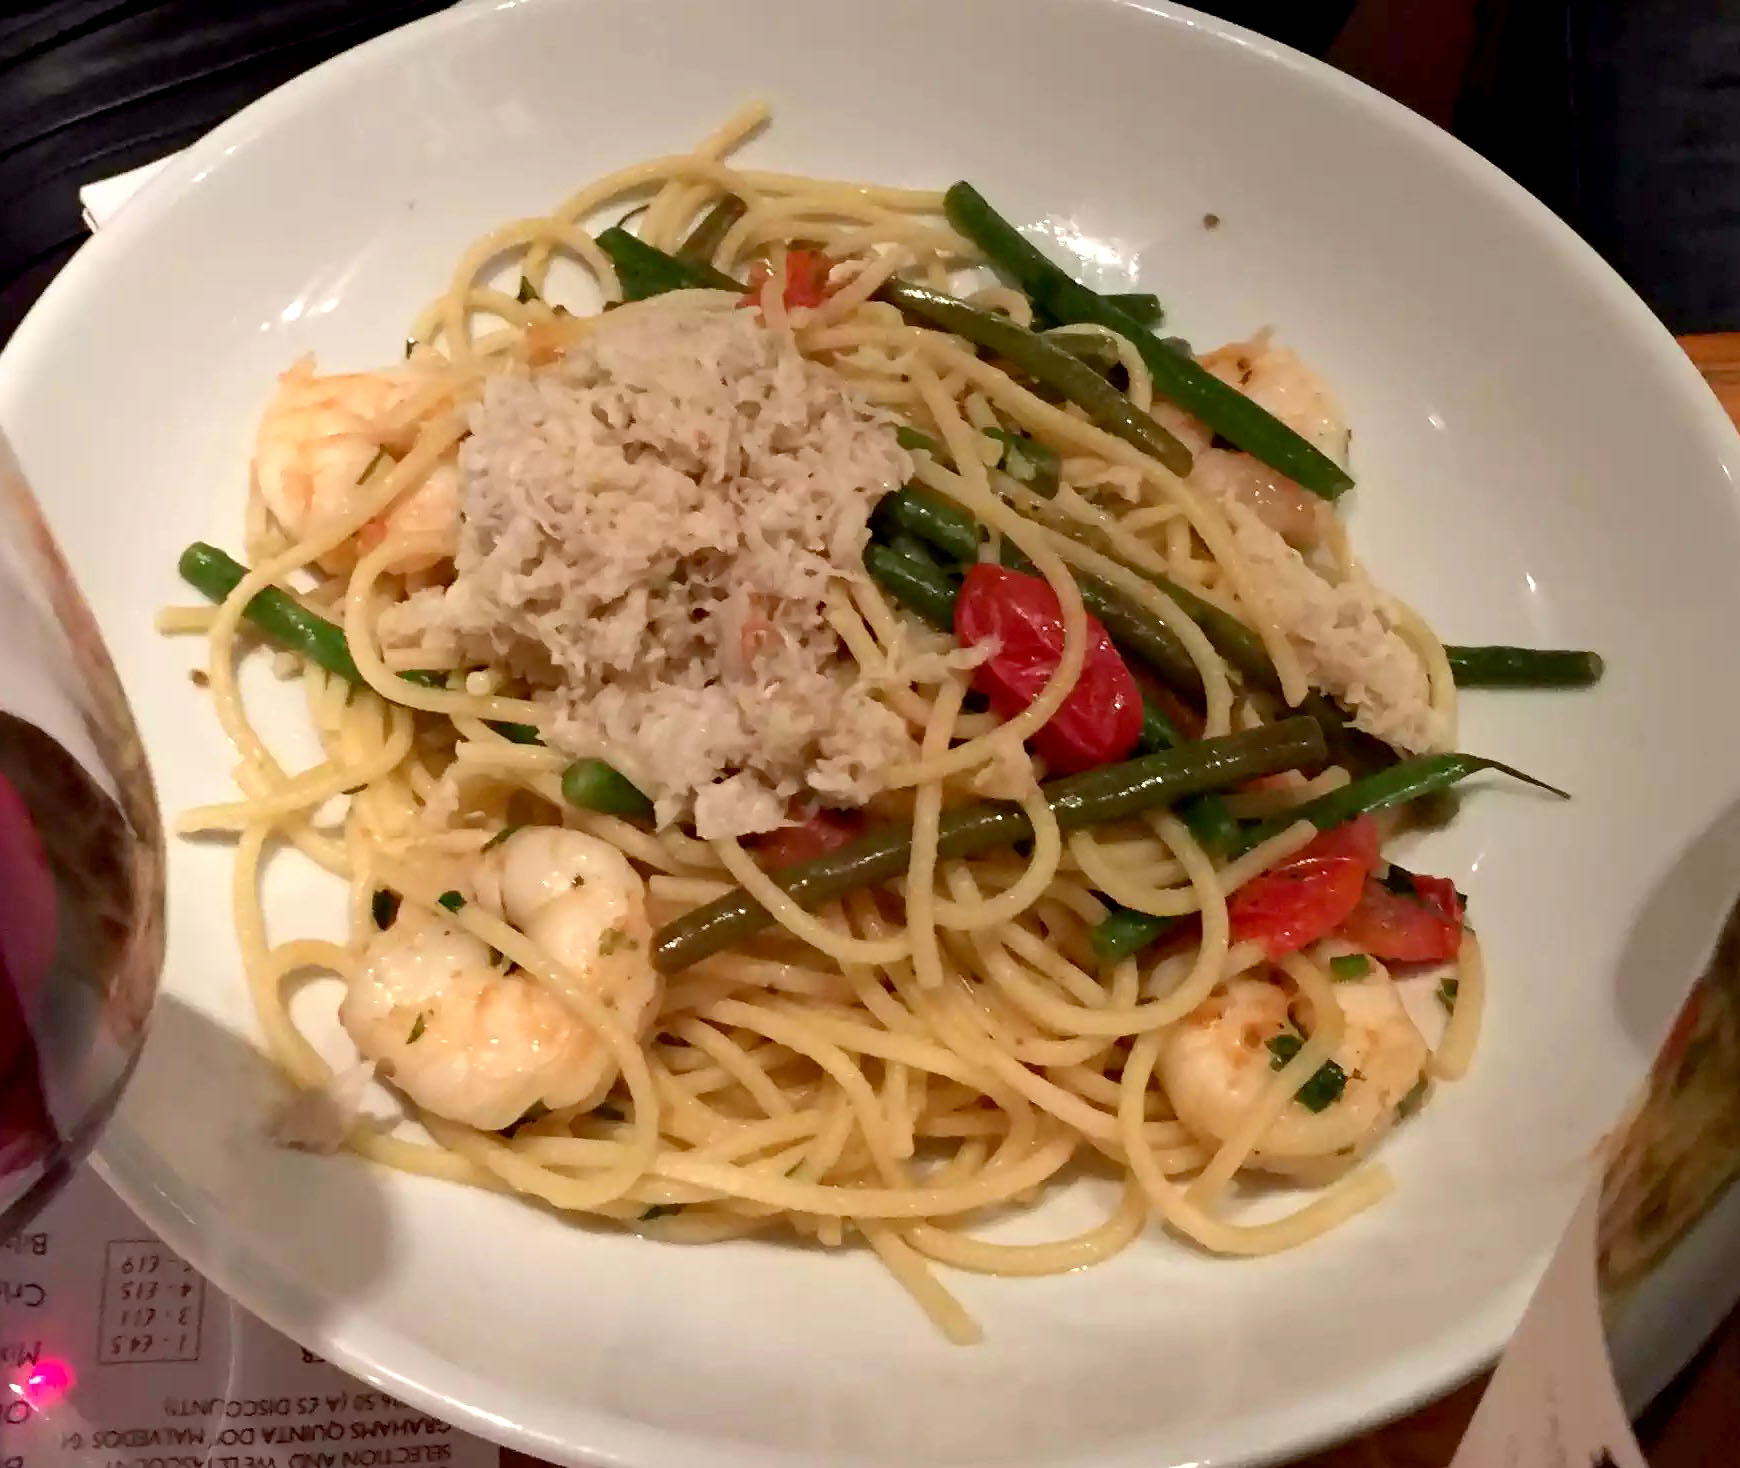 Cork & Bottle Leicester Square London Birthday Dinner Restaurant Wine Crab Prawn Seafood Linguine